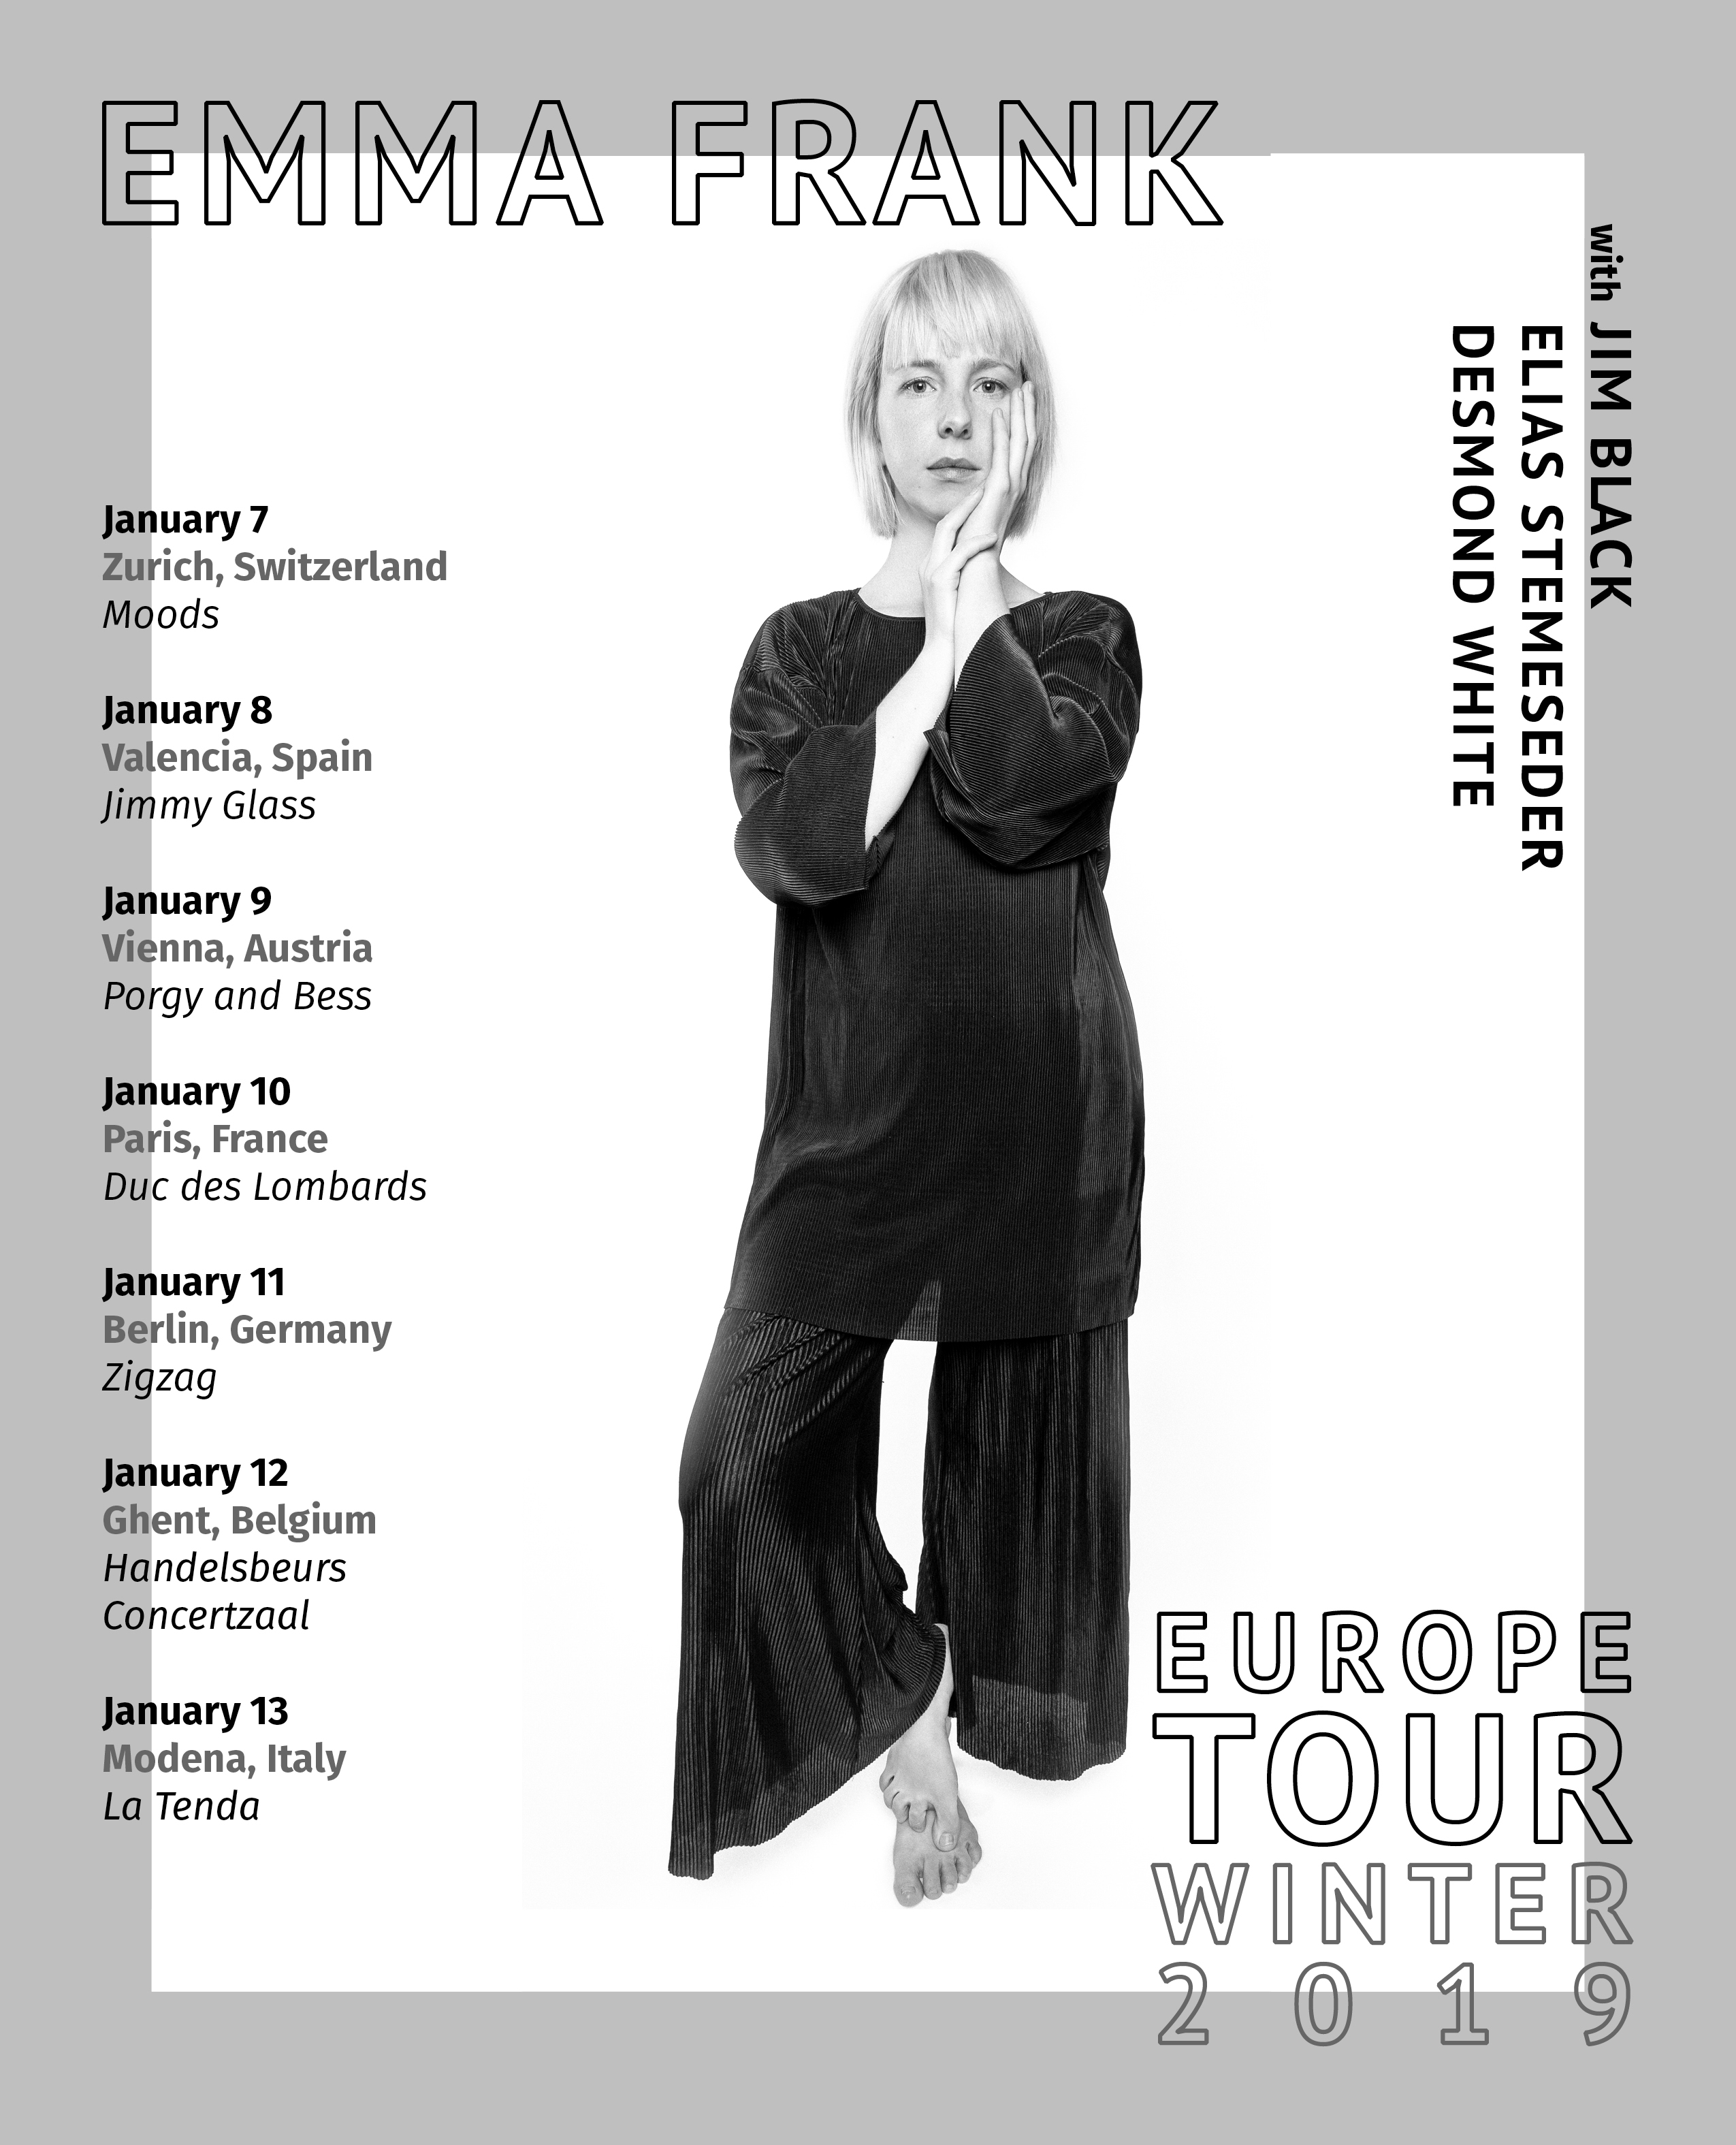 Emma Frank Announces European Tour in January